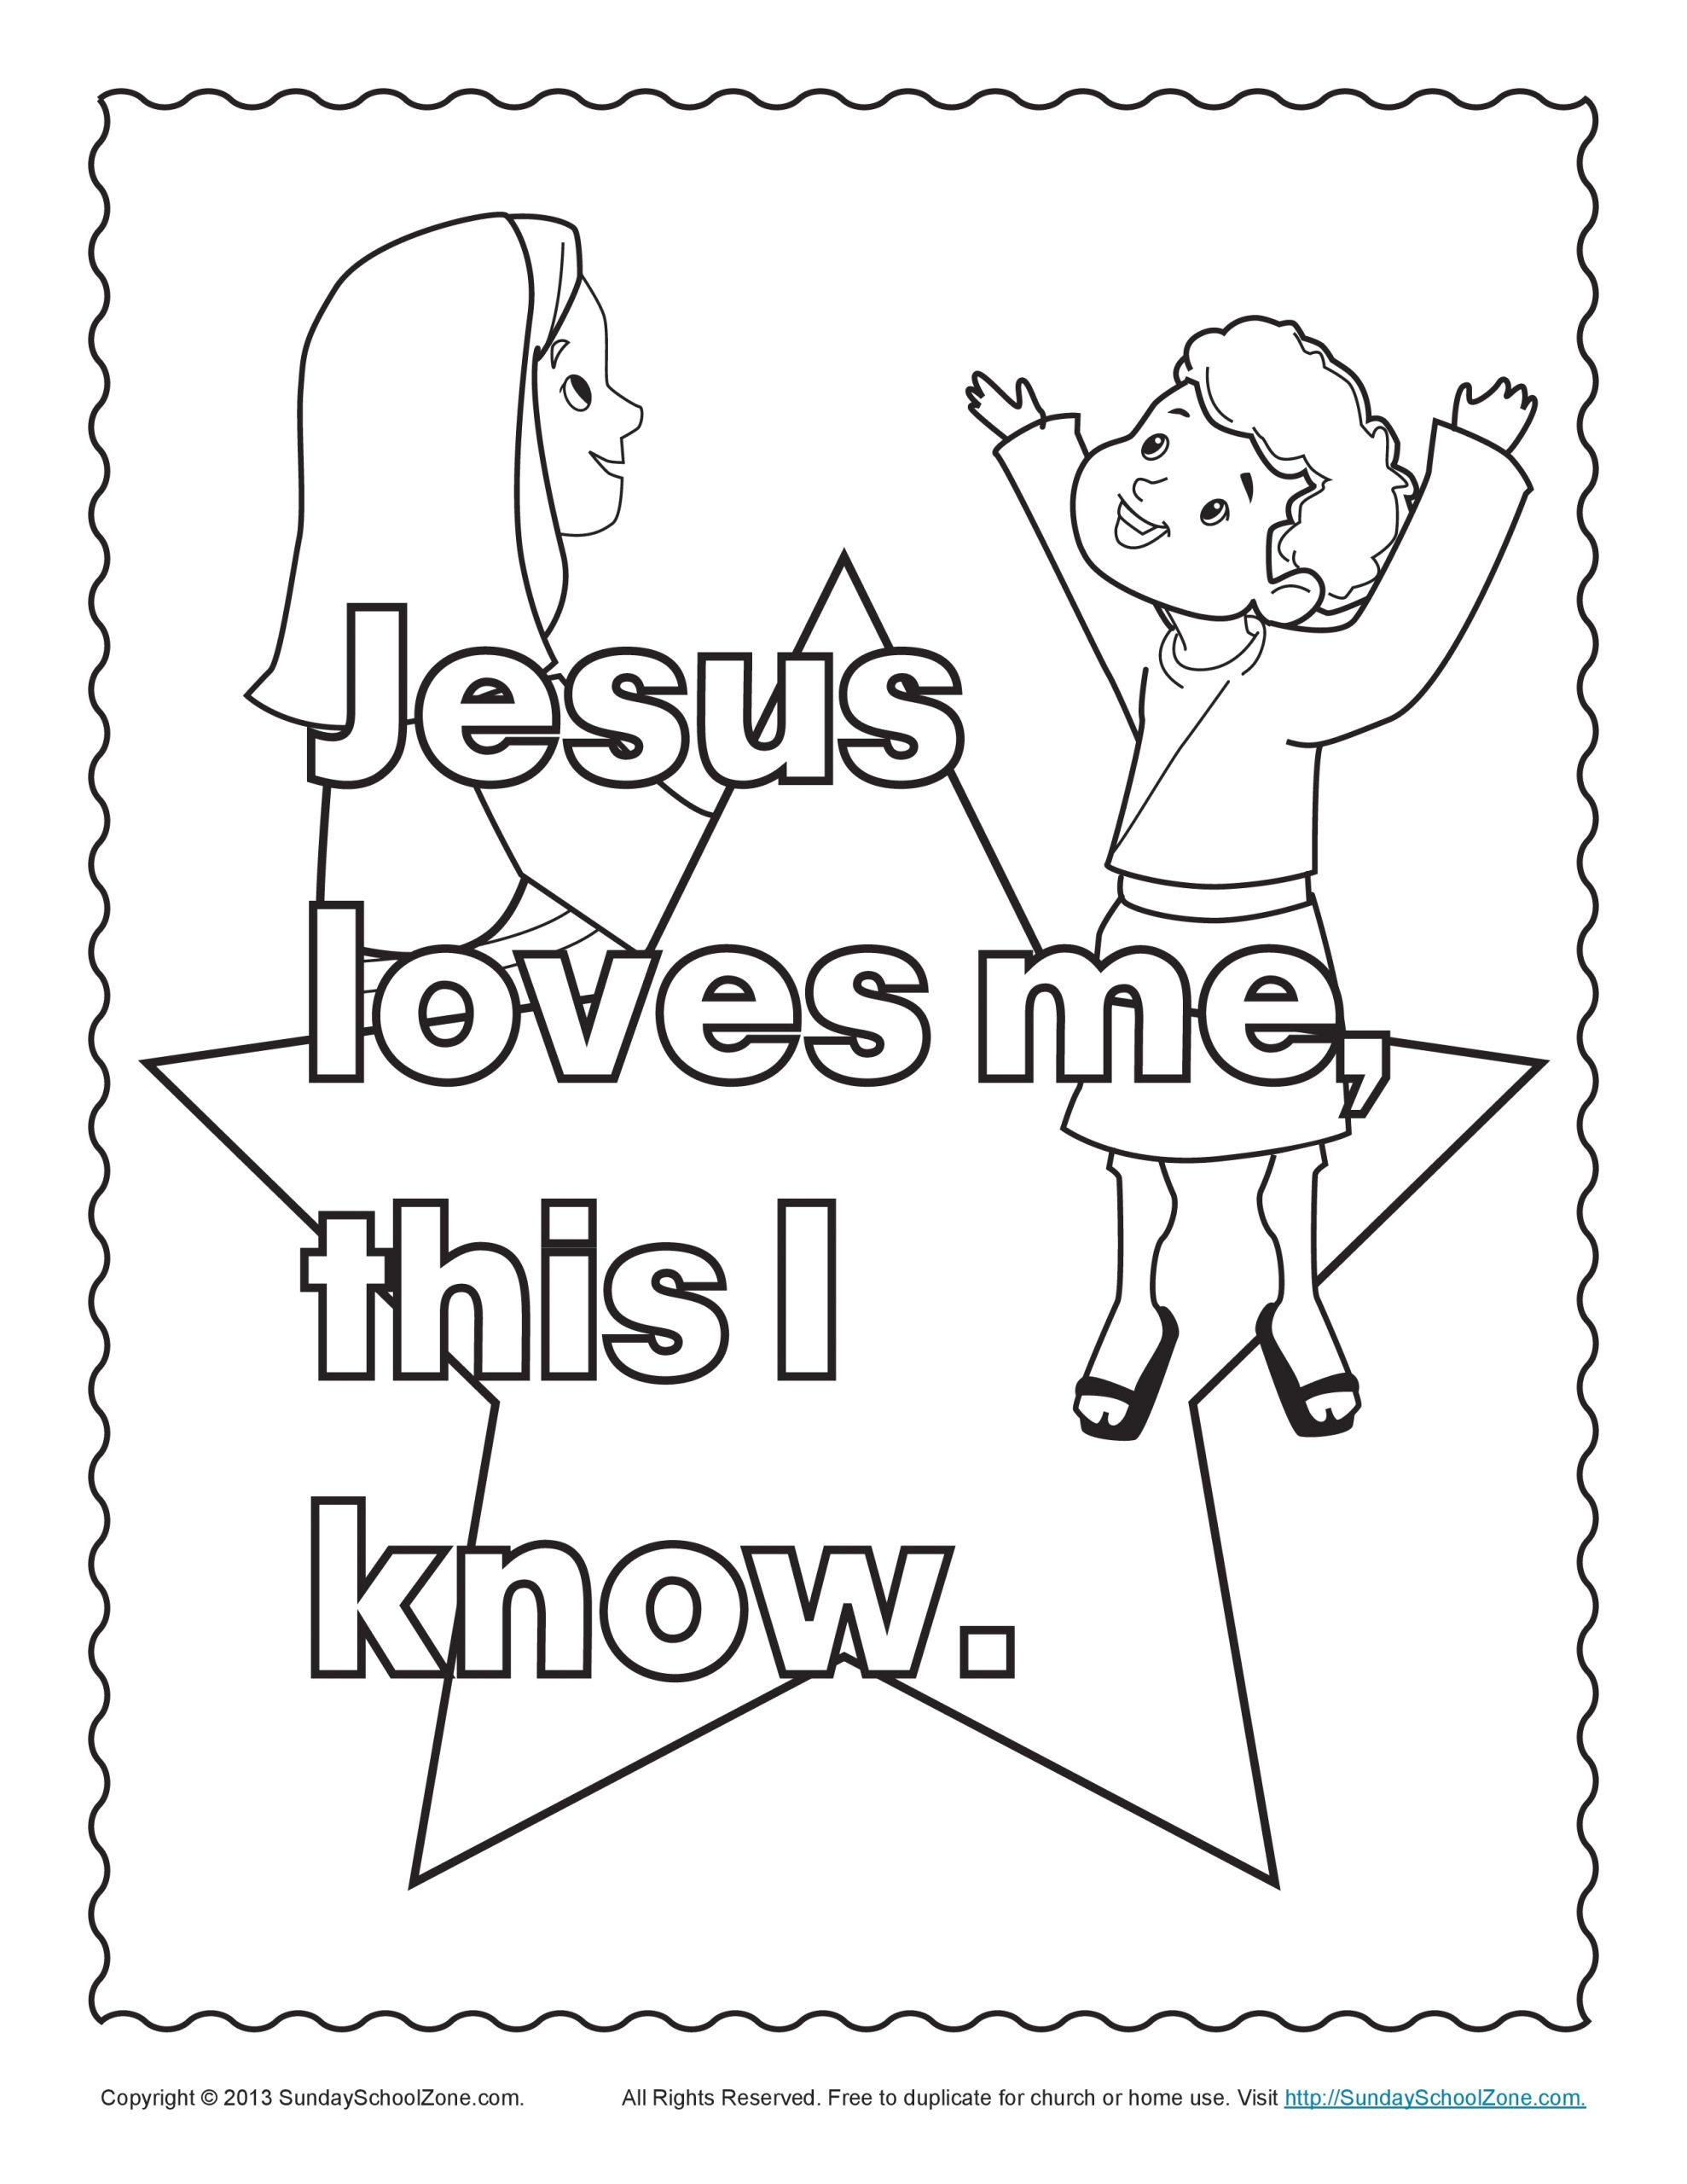 Free Printable Bible Coloring Pages for toddlers Free Printable Bible Coloring Pages for Preschoolers at